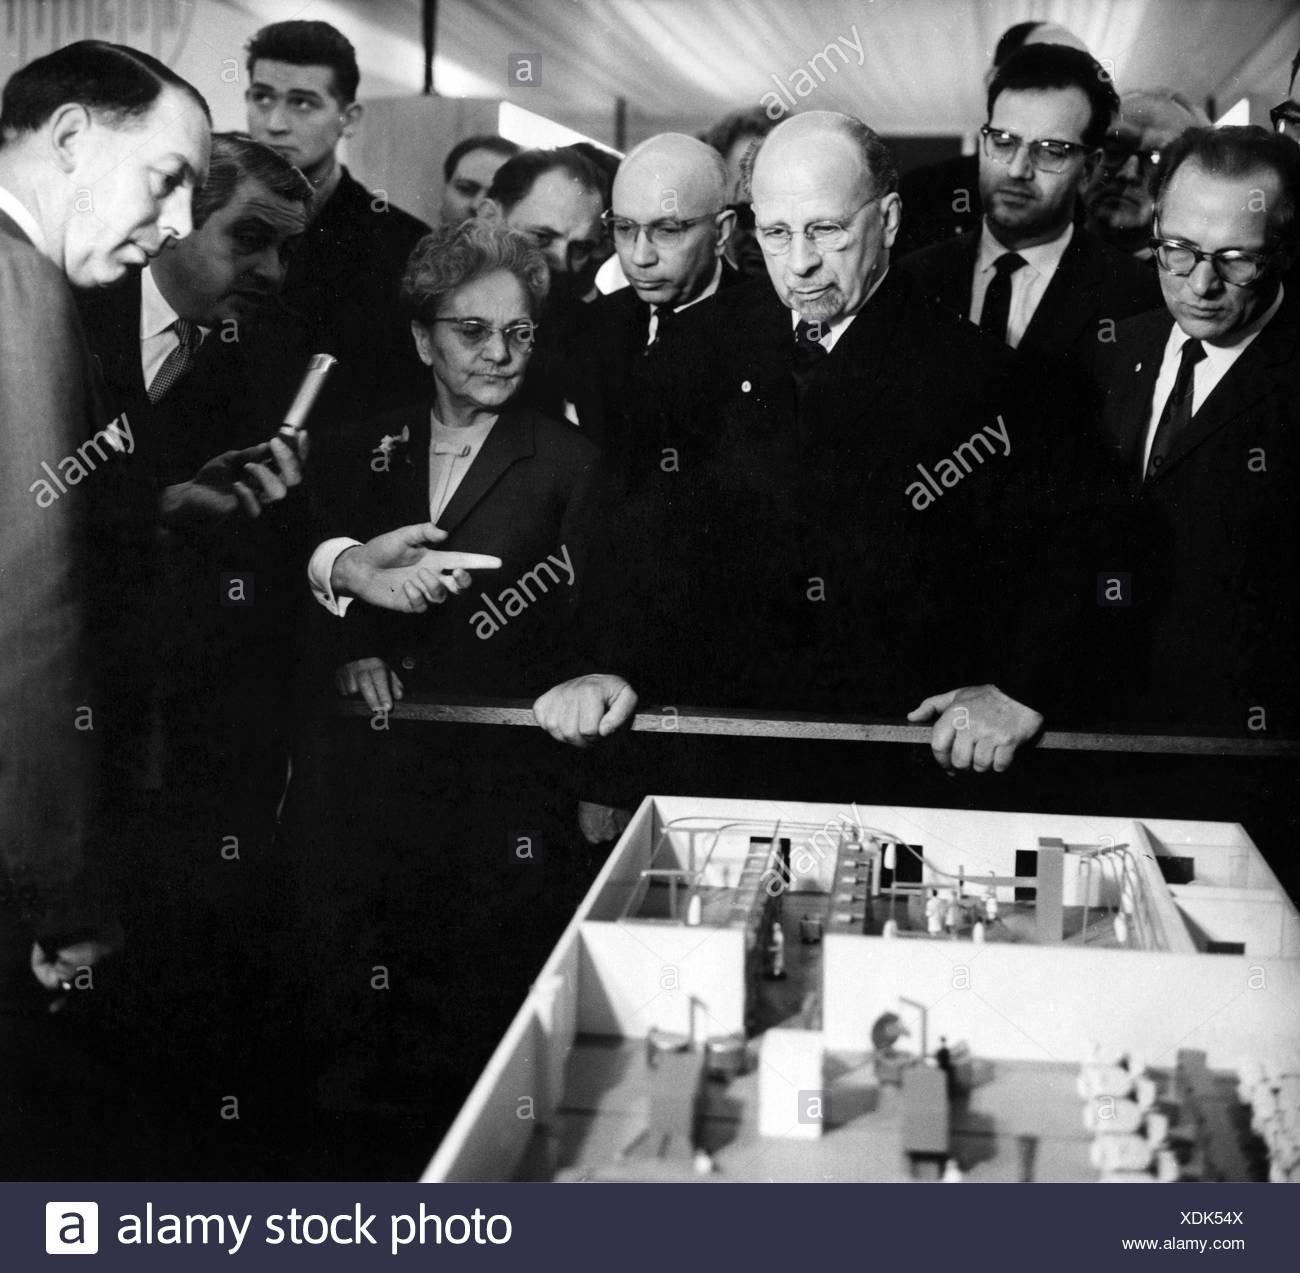 Ulbricht, Walter, 30.6.1893 - 1.8.1973, German politician (SED), Chairman of State Council of the German Democratic Republic 12.9.1960 - 1.8.1973, visiting the Leipzig Fair, stand of Associated British Laundry Engineers Ltd., with wife Lotte, 1964, , Additional-Rights-Clearances-NA - Stock Image